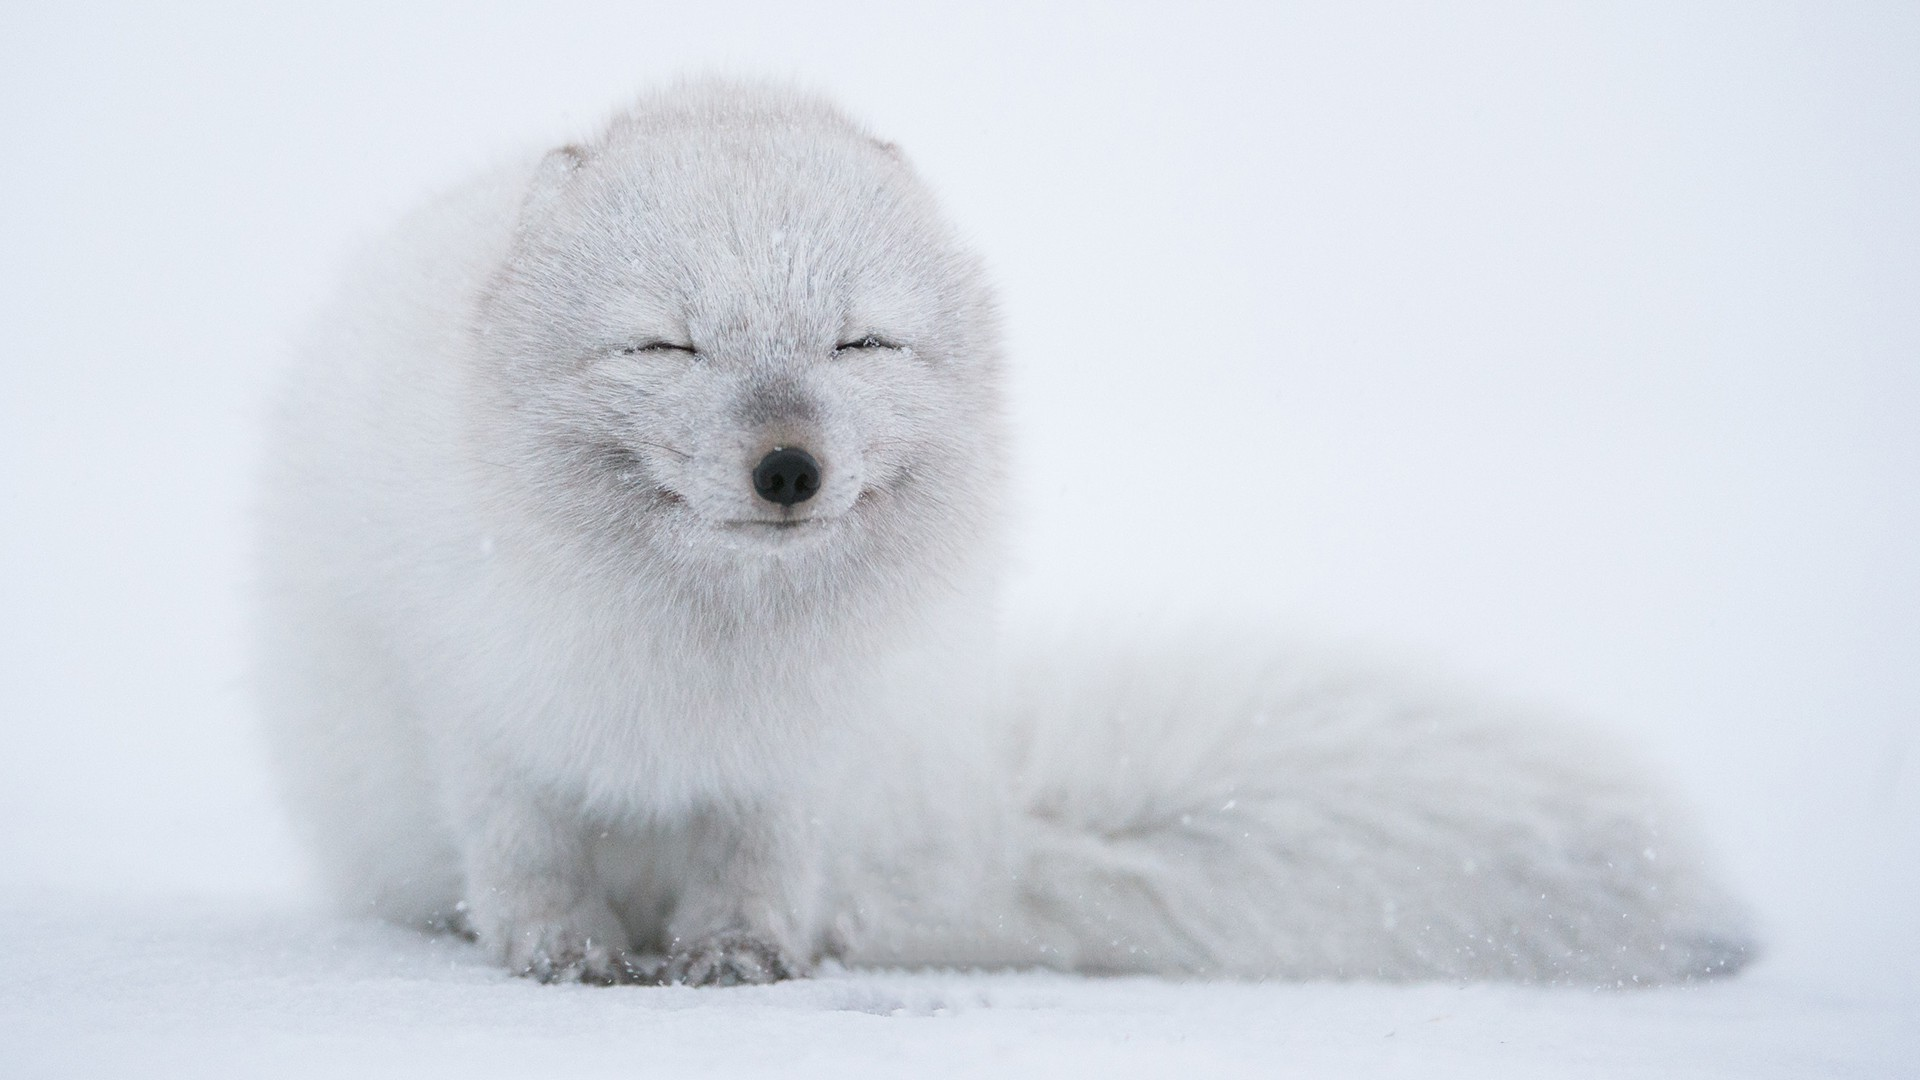 Live Winter Snow Fall Background Wallpaper Arctic Fox Animals Wallpapers Hd Desktop And Mobile